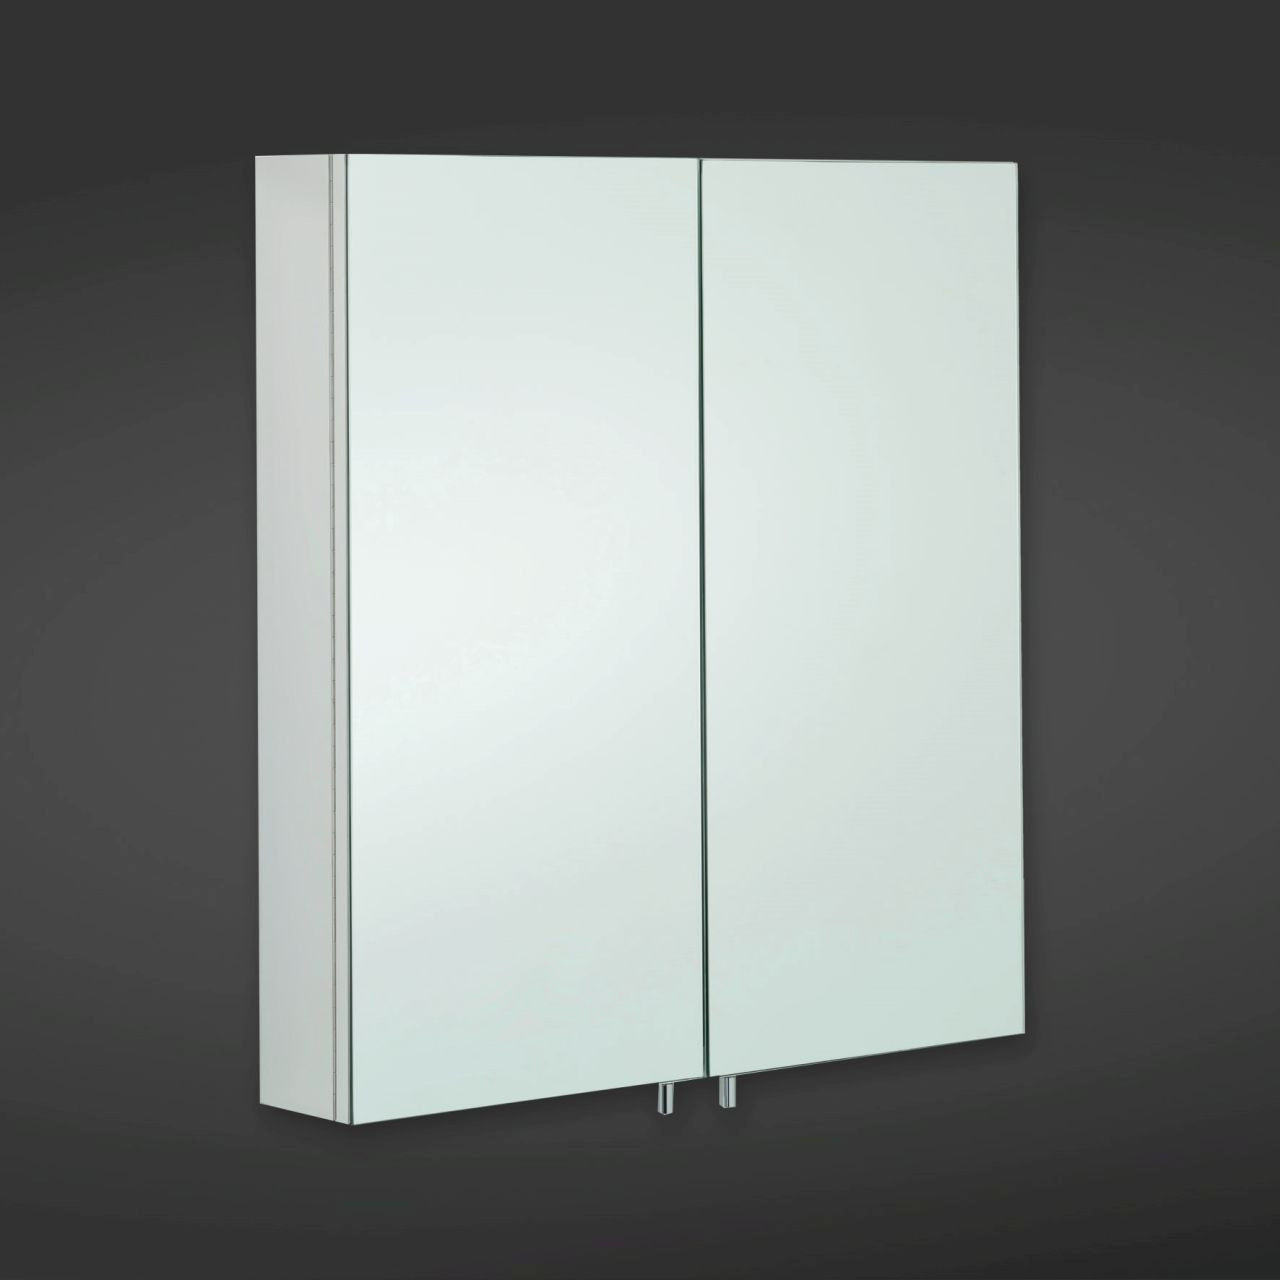 RAK Delta 600mm x 670mm x 120mm Double Stainless Steel Cabinet with Mirrored Doors - 12SL801